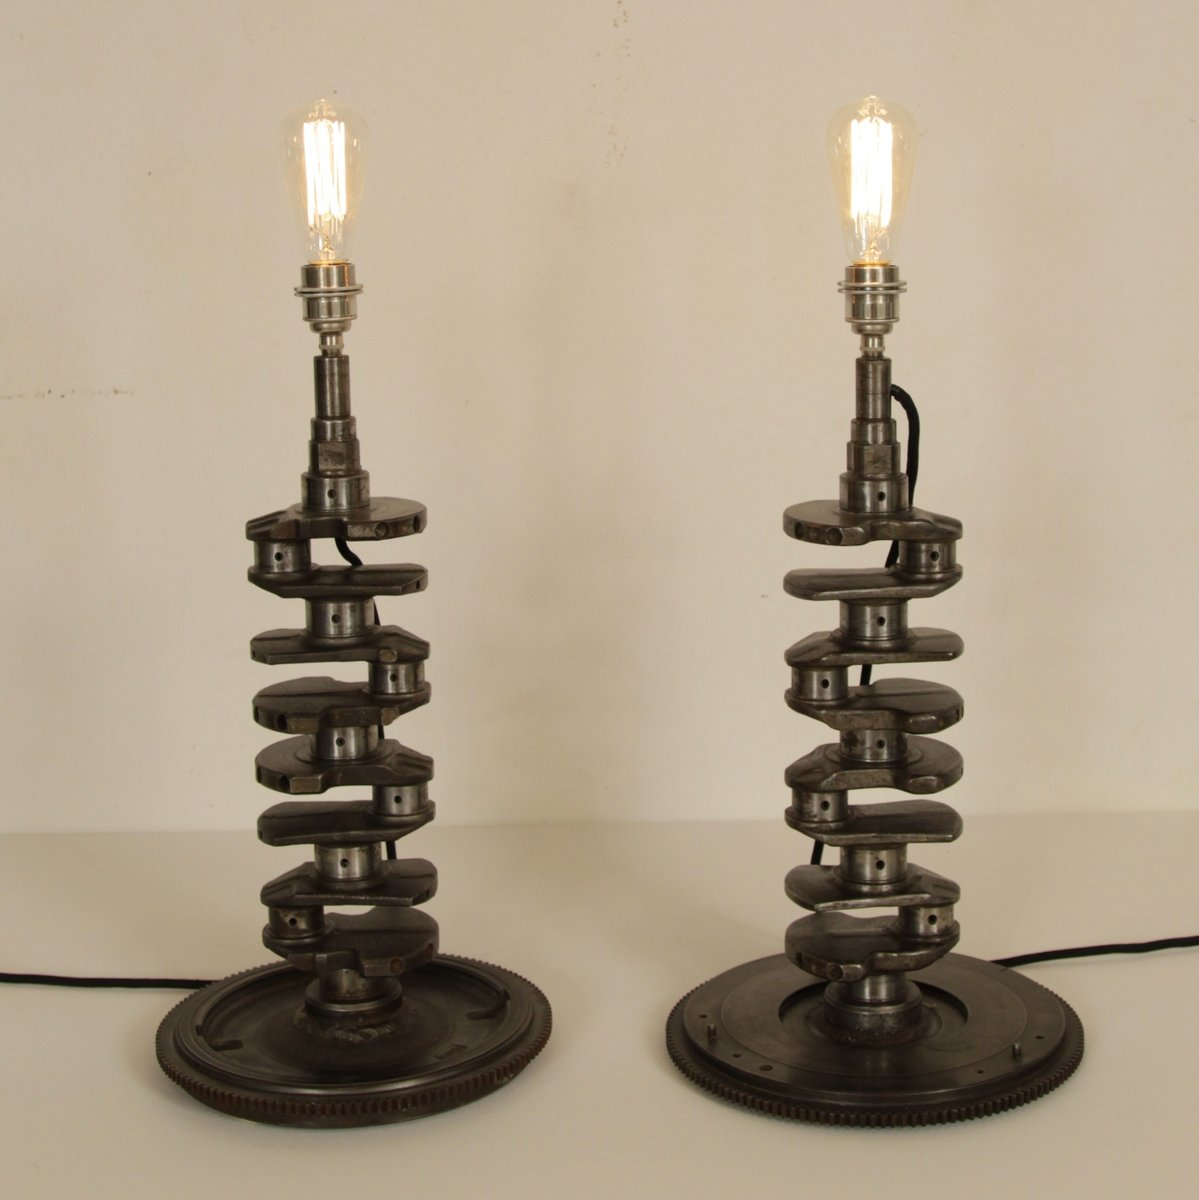 French Industrial Crankshaft Table Lamps, Set Of 2 For